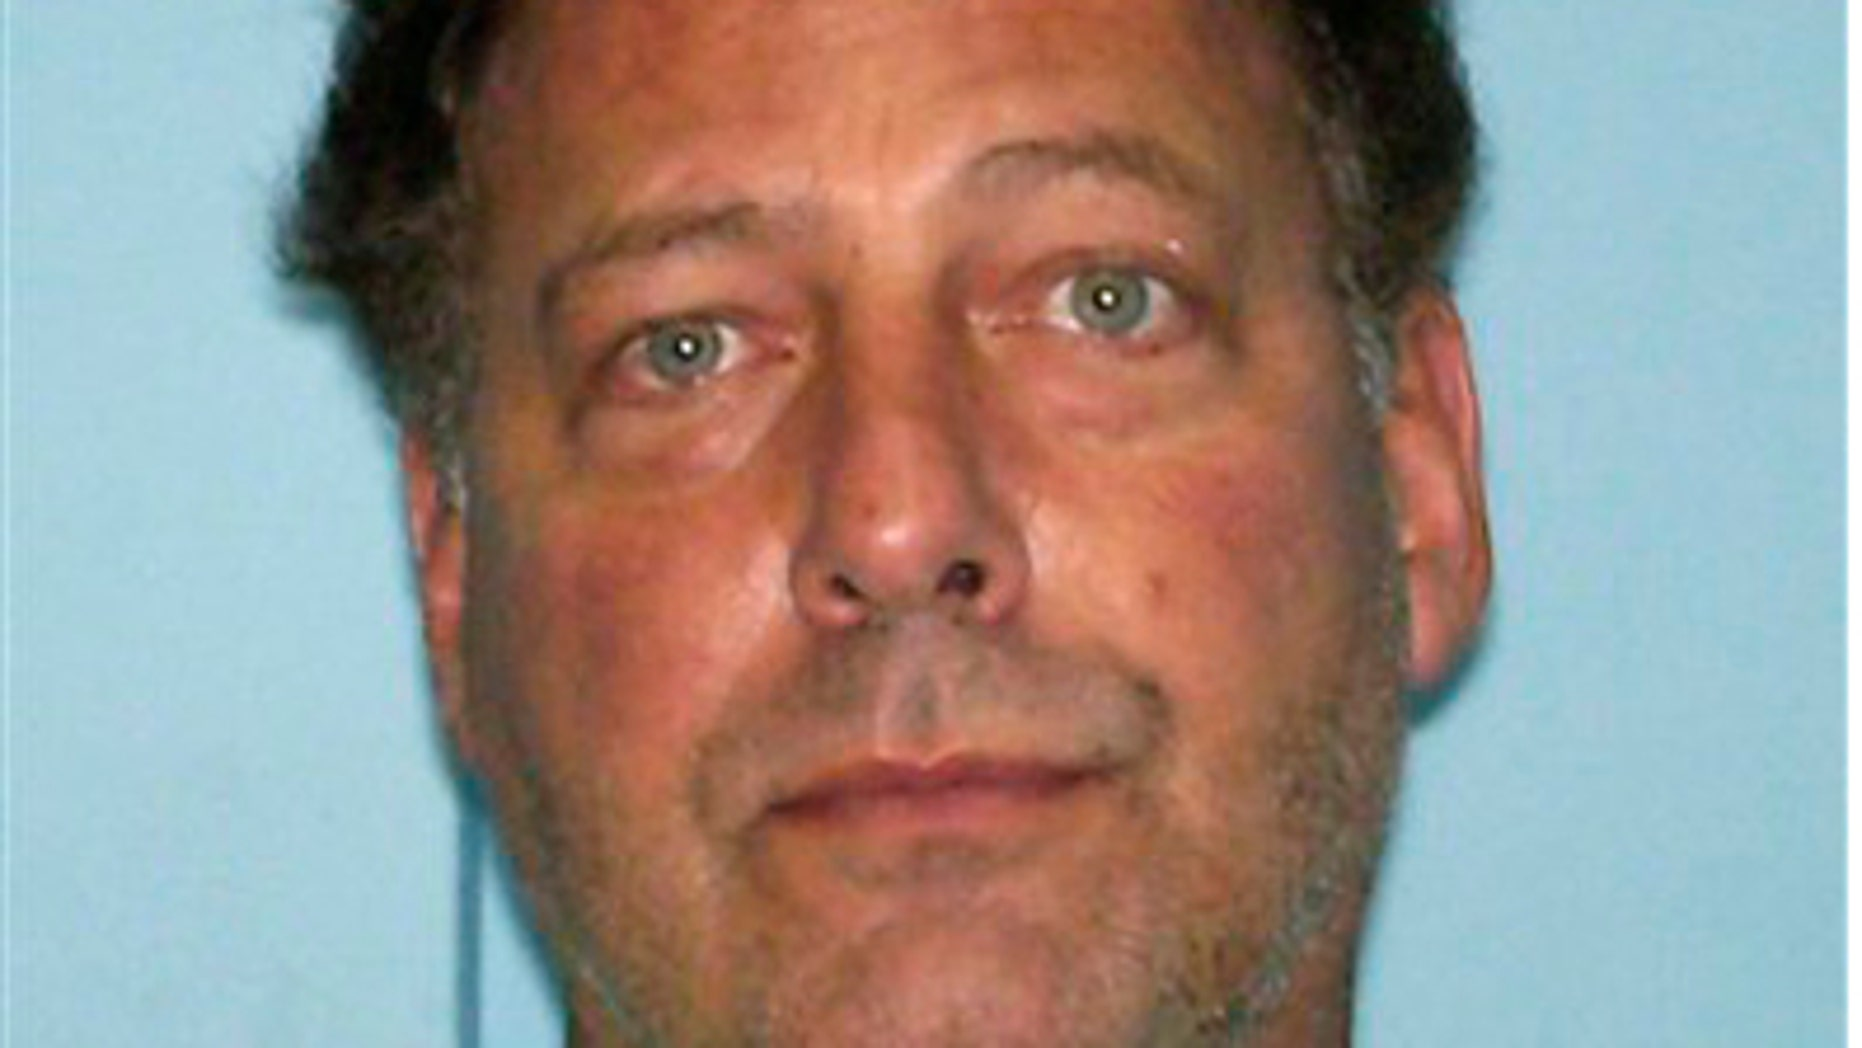 In this picture released Thursday Aug. 11, 2011, U.S. citizen Gary V. Giordano, 50, of Gaithersburg, Maryland is shown on an Aruba's police mugshot in Oranjestad, Aruba.